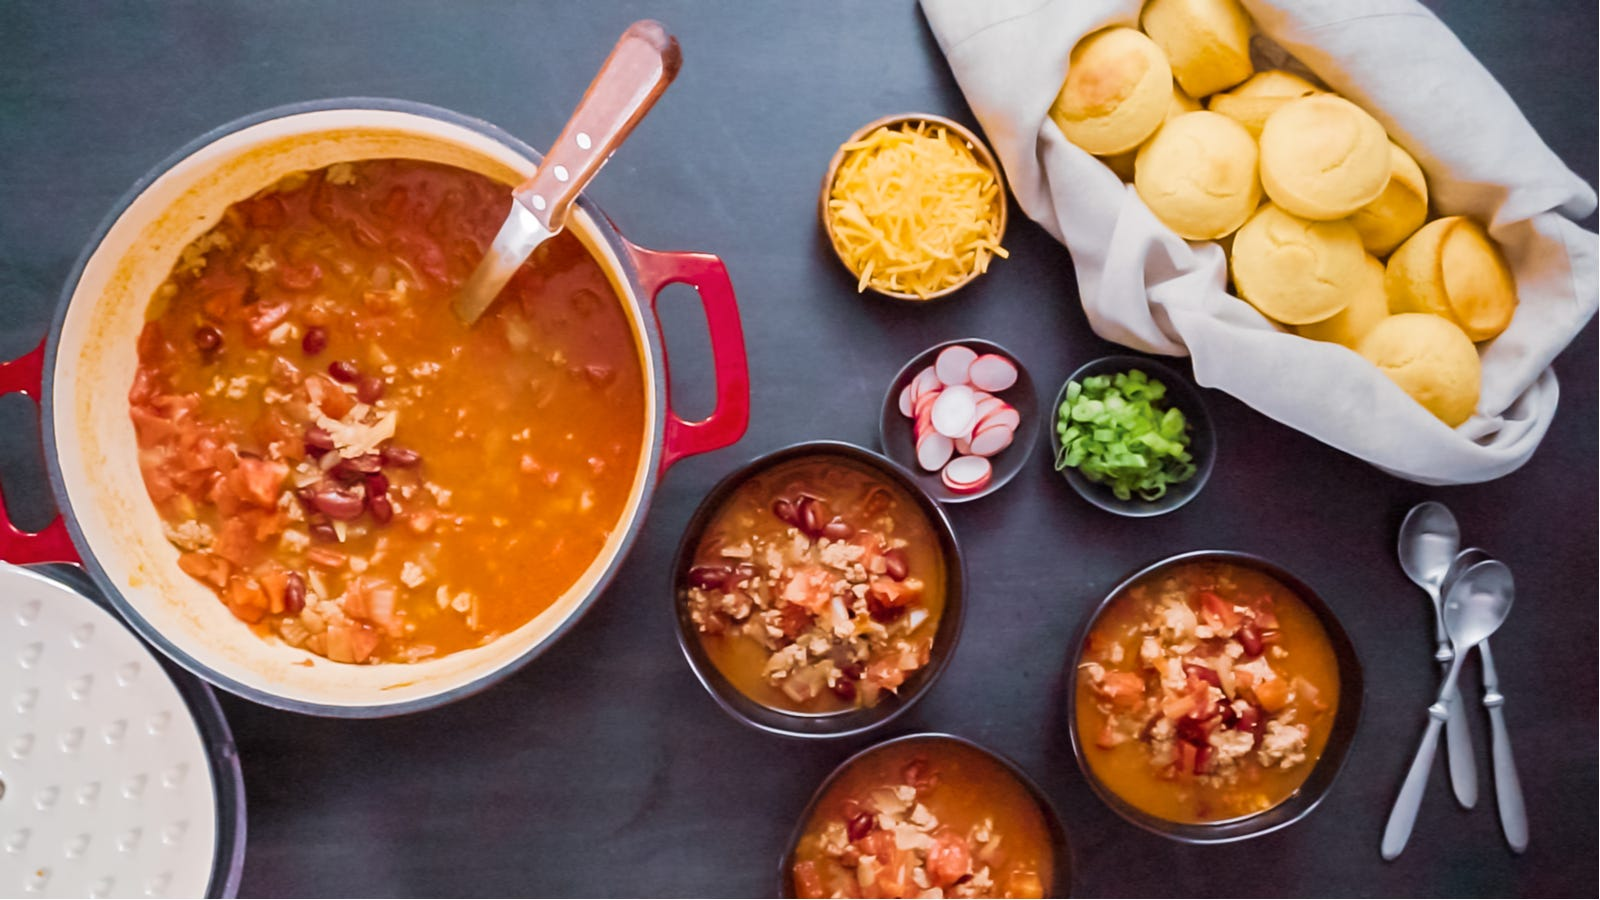 An enameled Dutch oven filled with a hearty chili with rolls and all the chili fixings ont the side.